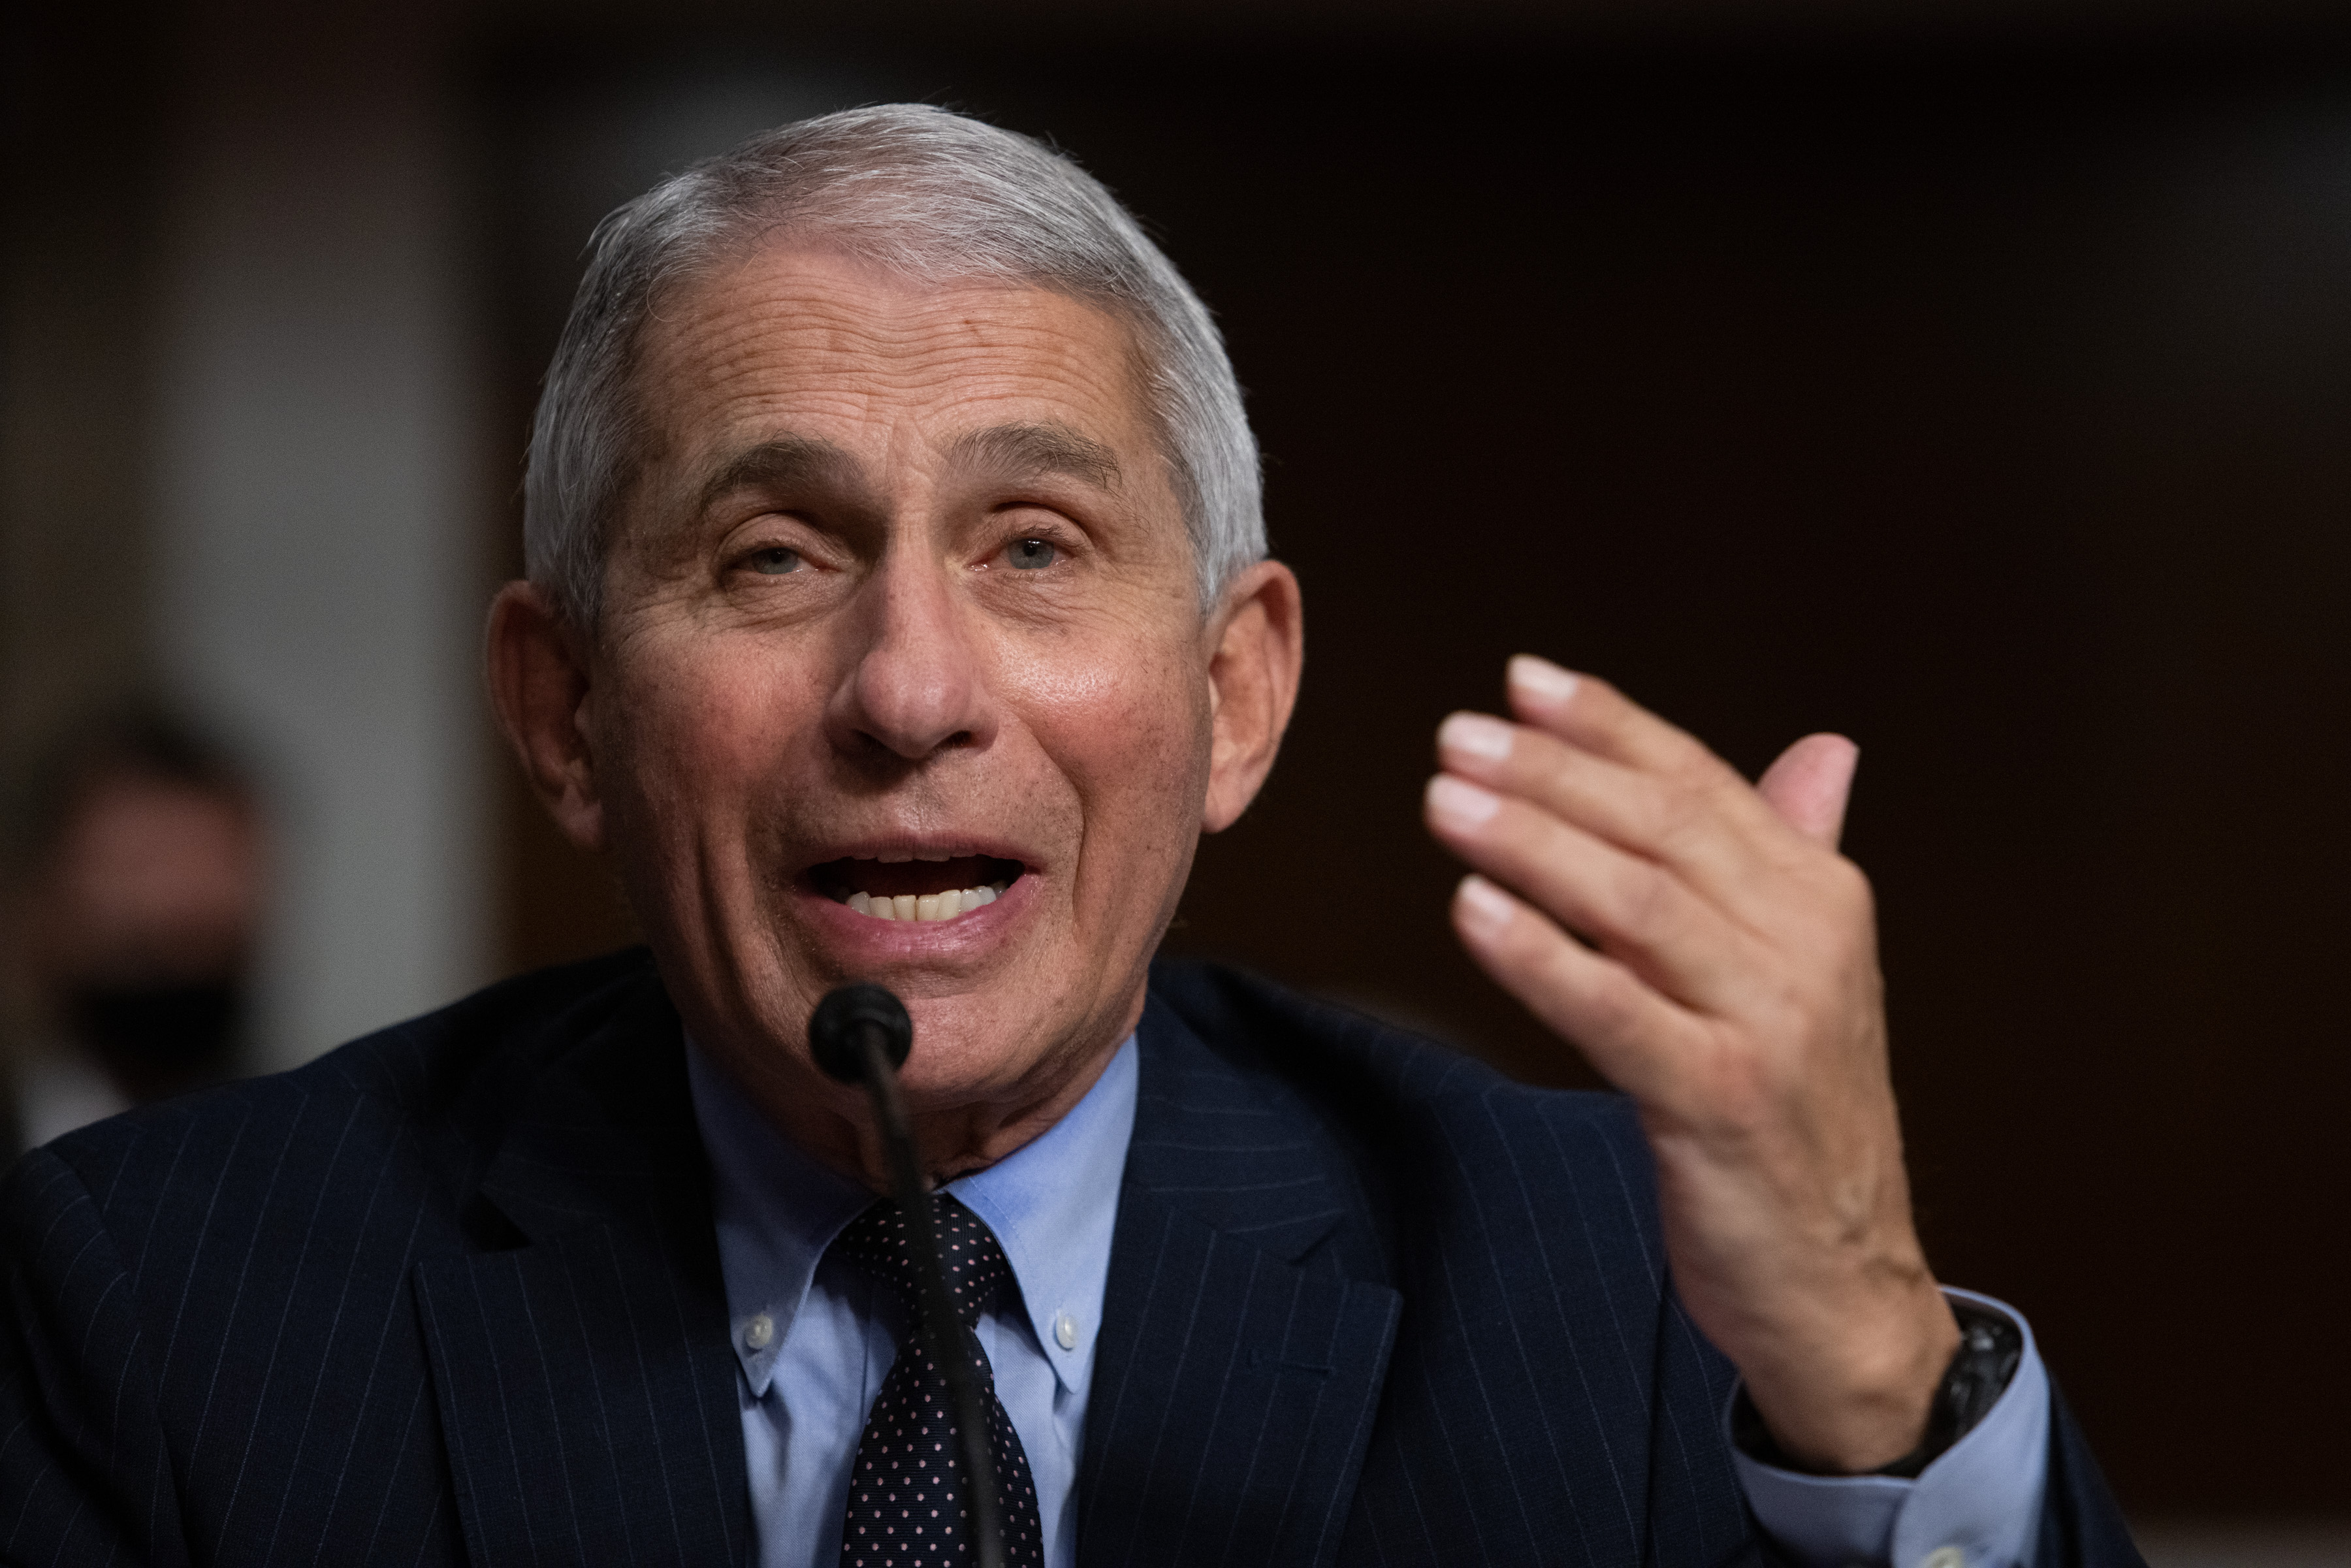 Fauci says it's 'liberating' to work on addressing pandemic under Biden